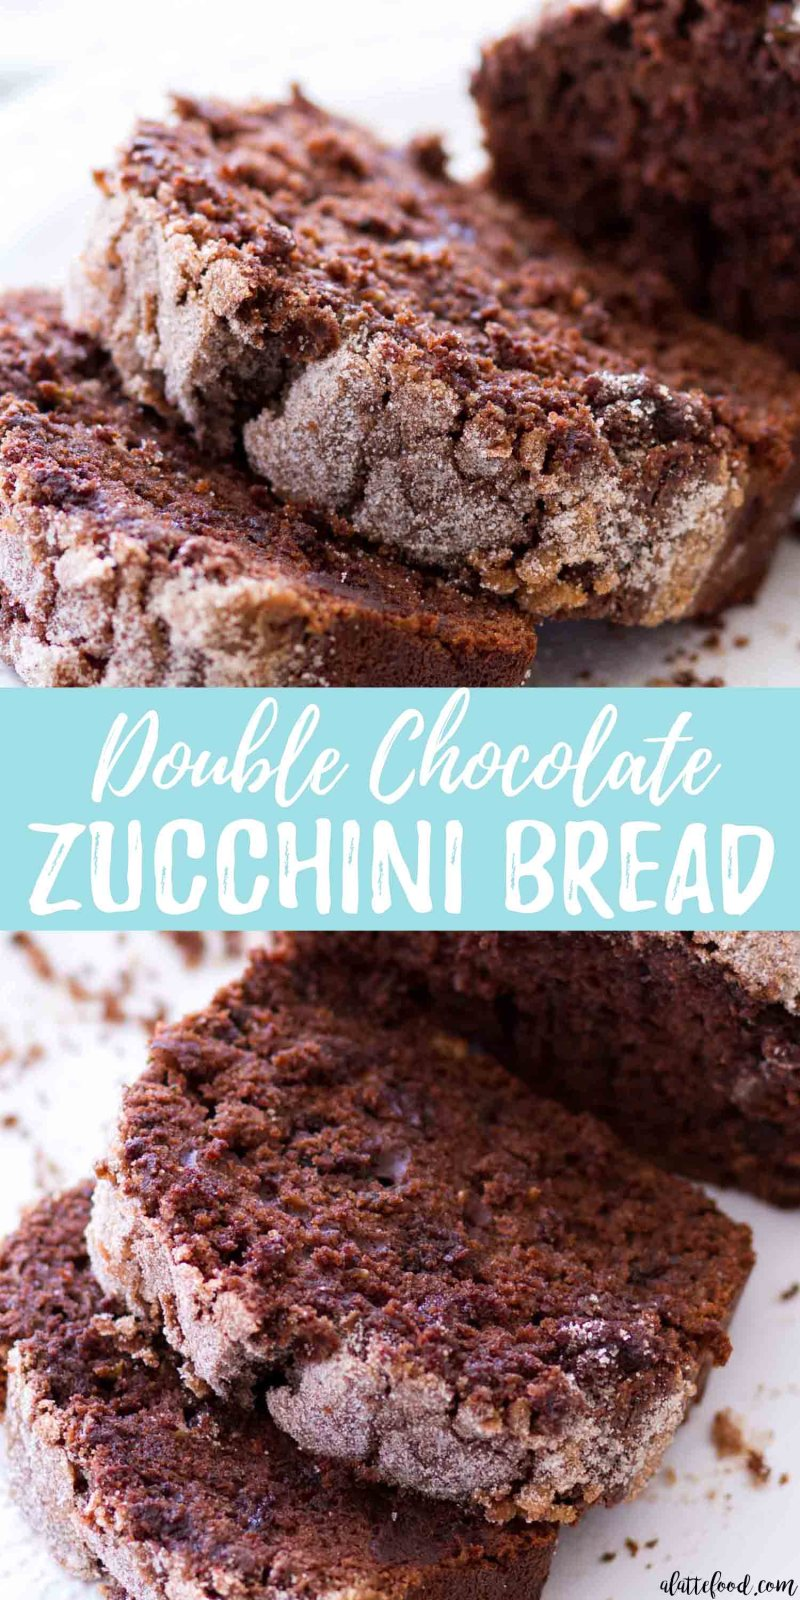 This Double Chocolate Zucchini Bread recipe is rich, fudgy, and full of sweet chocolate flavor. Homemade zucchini bread is so simple to make and when topped with a cinnamon sugar crust, this double chocolate zucchini bread is irresistible! the best chocolate zucchini bread, zucchini bread with chocolate chips